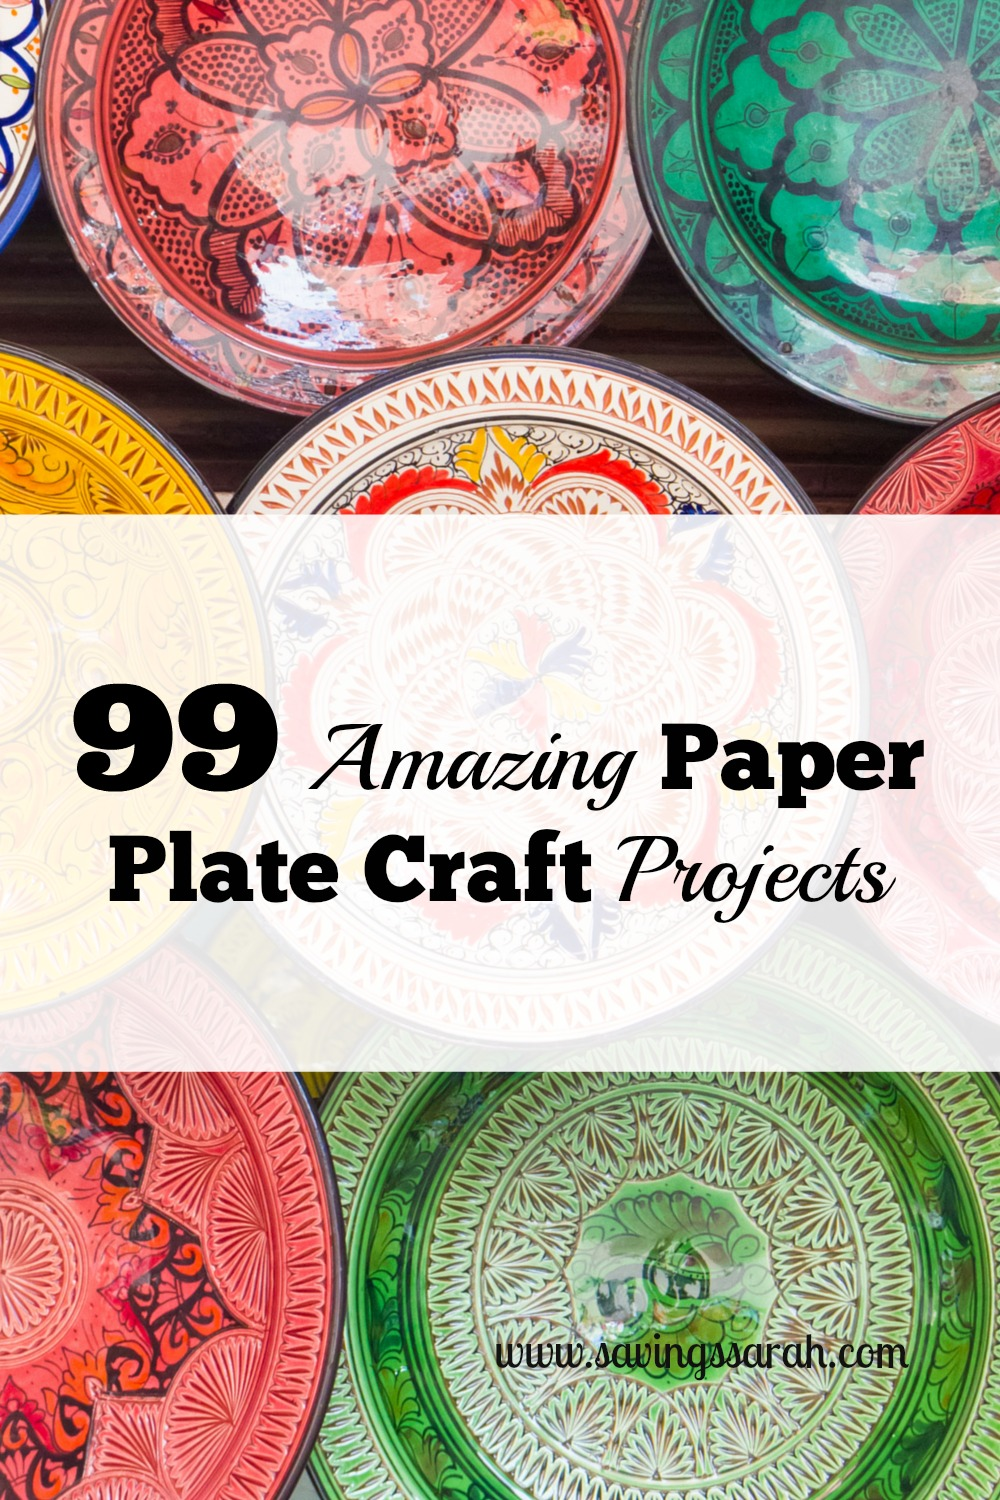 99 Amazing Paper Plate Craft Projects Earning And Saving With Sarah